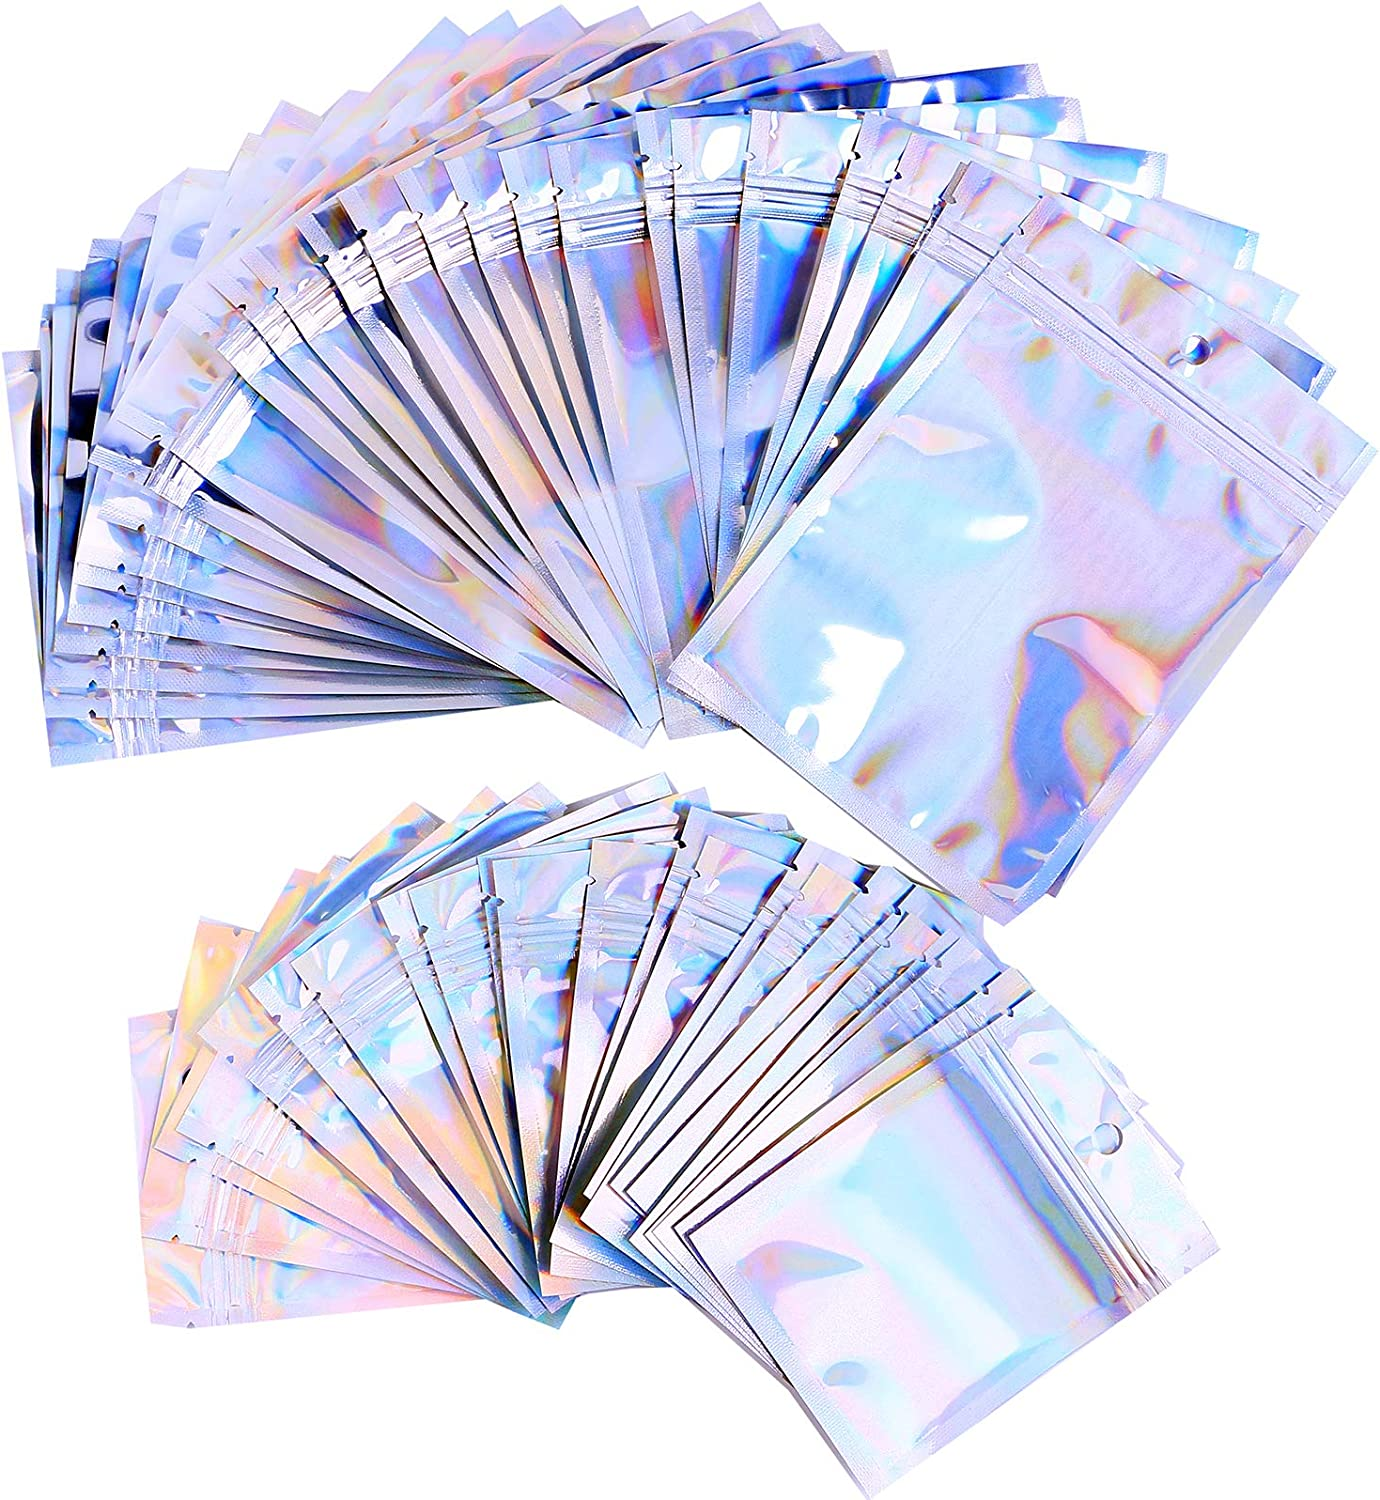 50 Pieces Resealable Smell Proof Bags Foil Pouch Bag, Used to store and pack party food, jewelry, lip gloss, eyelashes, party supplies, candy (Medium,Holographic Color, 4 x 6 Inch and 6 x 9 Inch)